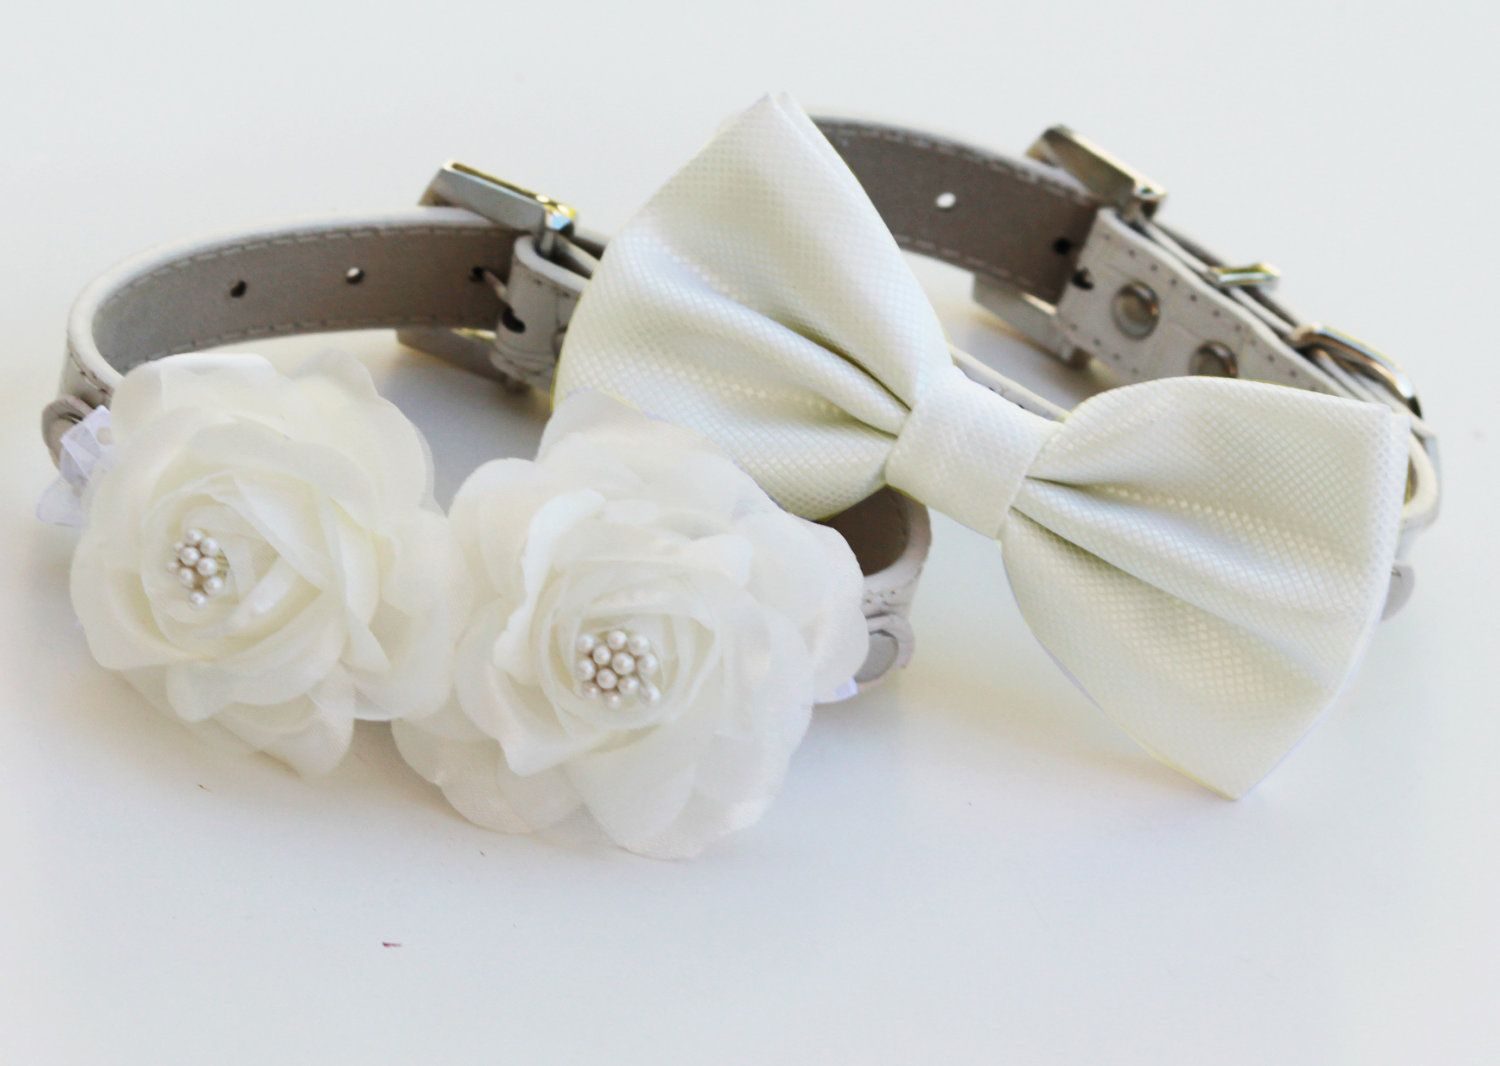 White Wedding Dog Collars Bow Tie And Fl Collar High Quality Accessory Two 64 99 Via Etsy